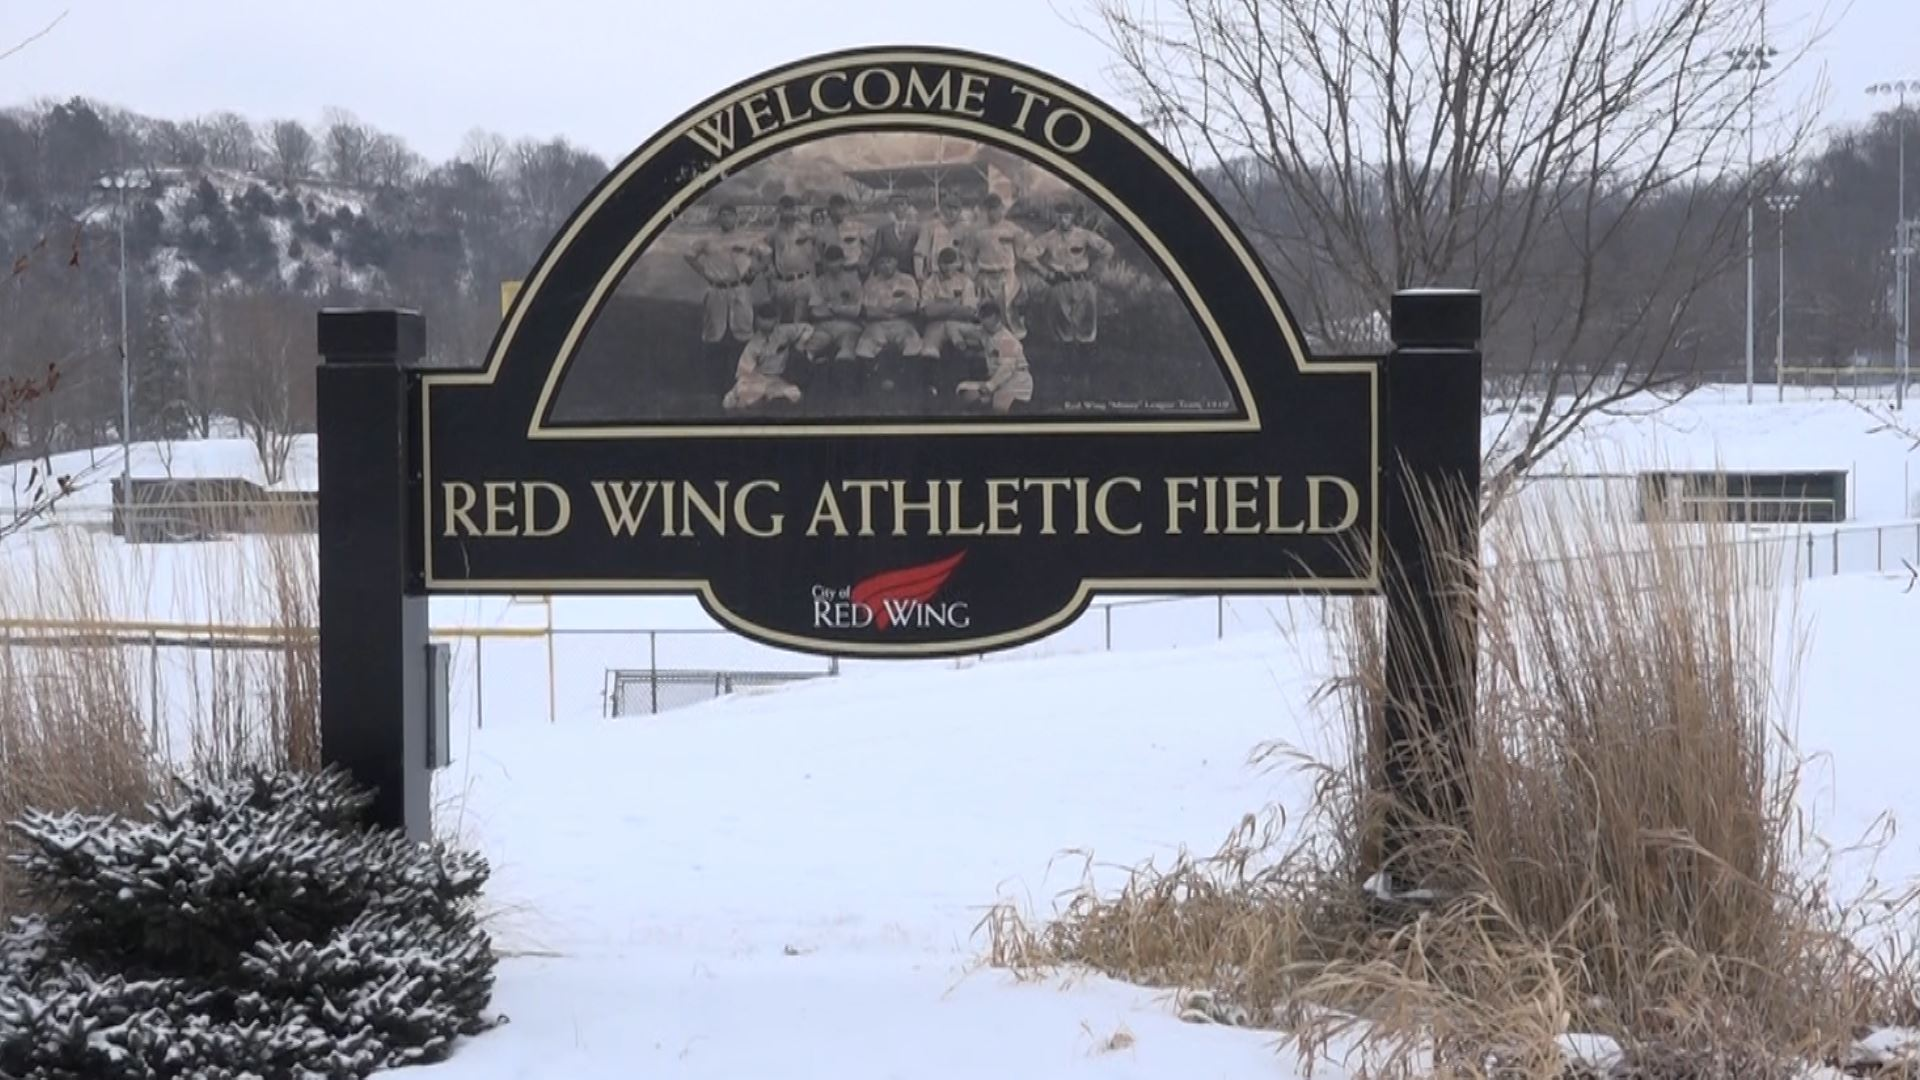 Image of the Red Wing Athletic Field sign in winter.